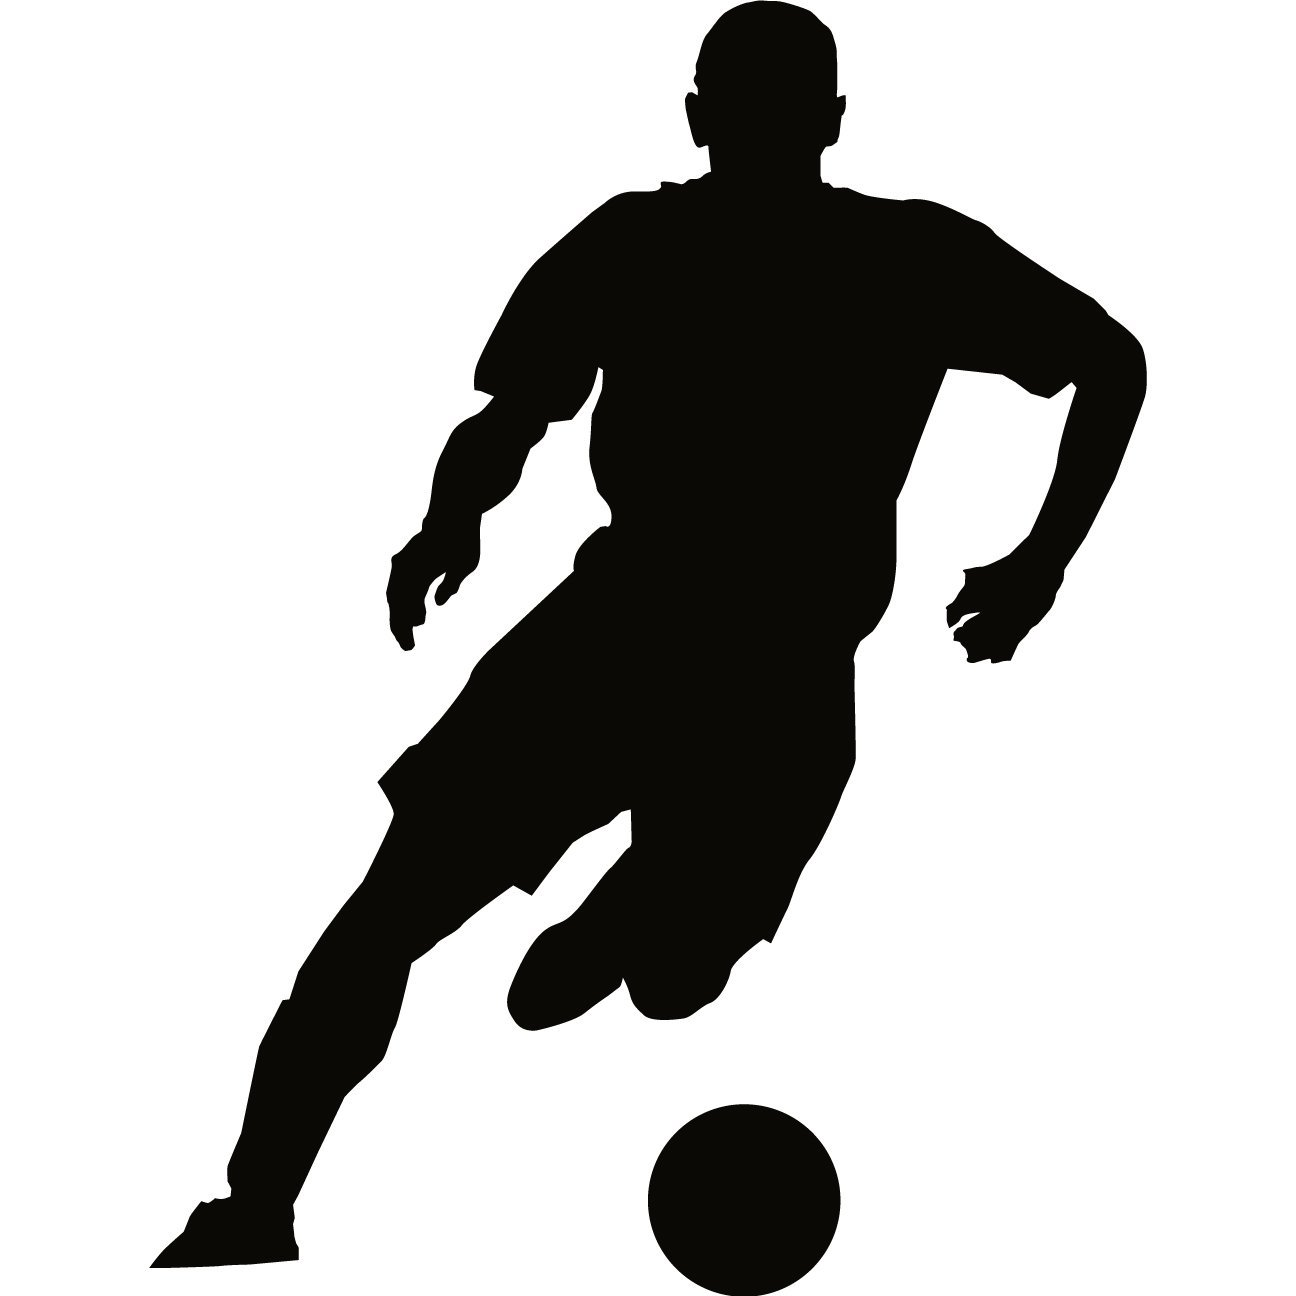 Football Player Silhouette Clipart - Clipart Kid